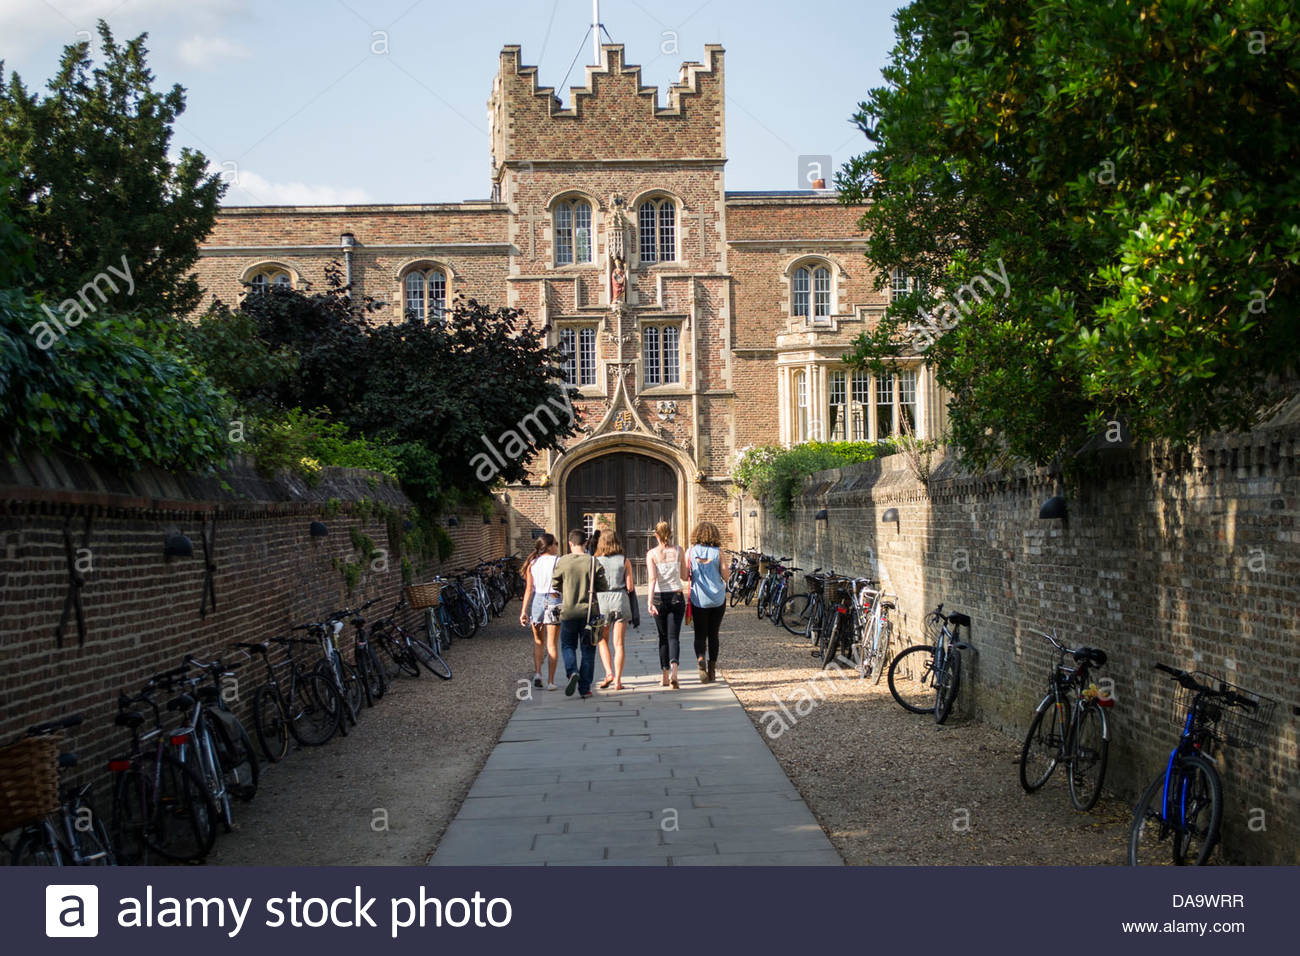 Students walking along 'The Chimney' at Jesus College, Cambridge in the summer sunshine - Stock Image